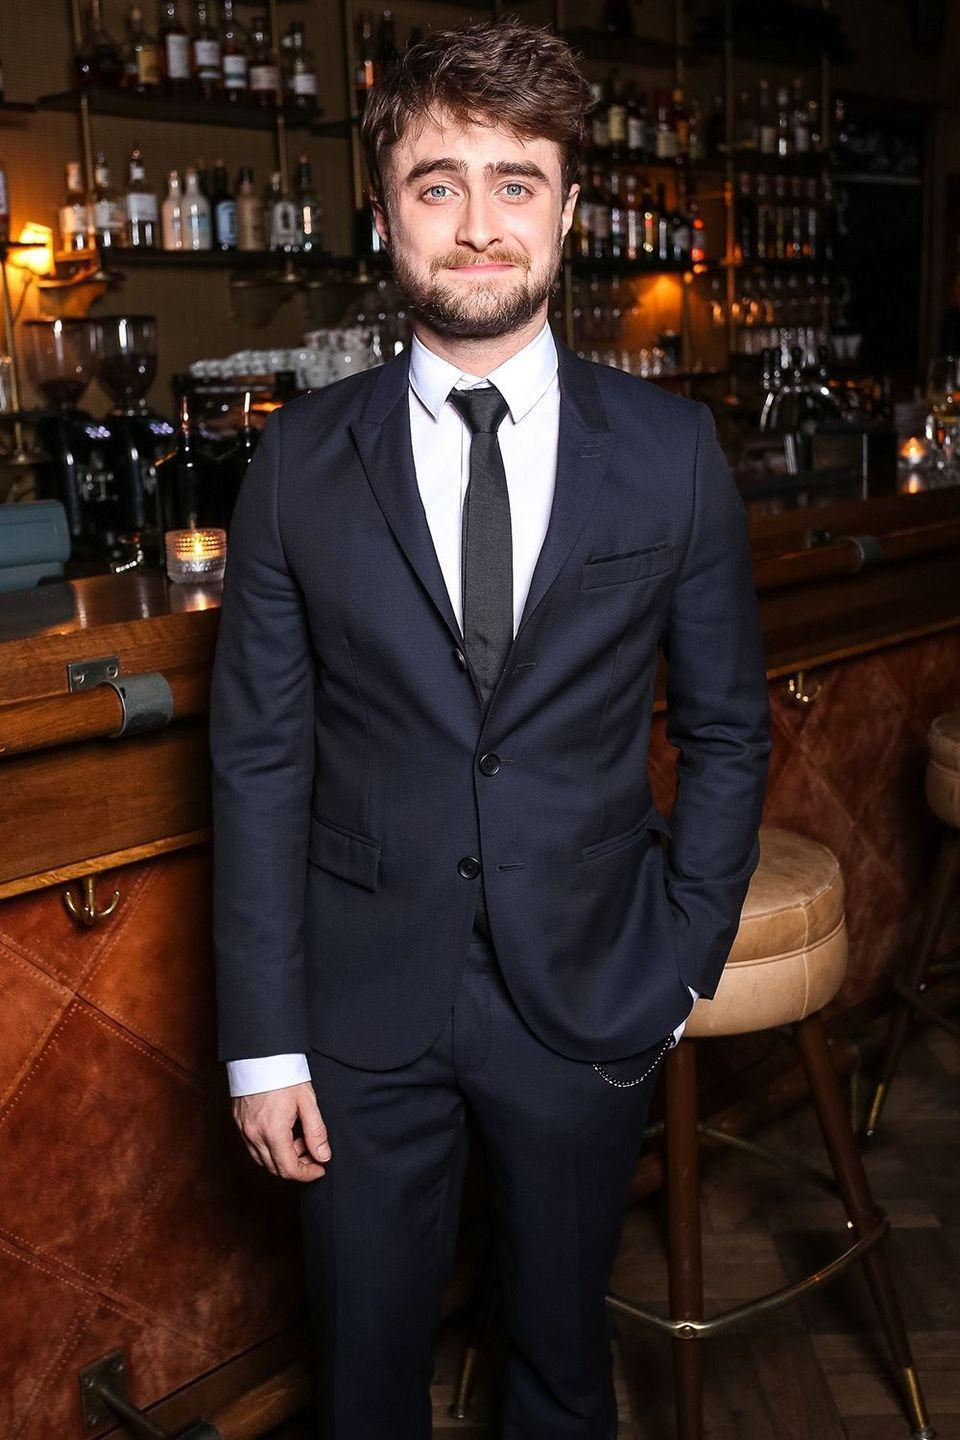 """<p>In an interview with <a href=""""http://www.telegraph.co.uk/films/0/daniel-radcliffe-on-alcoholism-starving-himself-harry-potter---a/"""" rel=""""nofollow noopener"""" target=""""_blank"""" data-ylk=""""slk:The Telegraph"""" class=""""link rapid-noclick-resp""""><em>The Telegraph</em></a> last year the<em> Harry Potter</em> star discusses his long road to sobriety throughout the later years of filming the famed film franchise that led to his feelings now toward the substance. """"It's lovely. I barely think about it [alcohol]"""" he explained. </p>"""